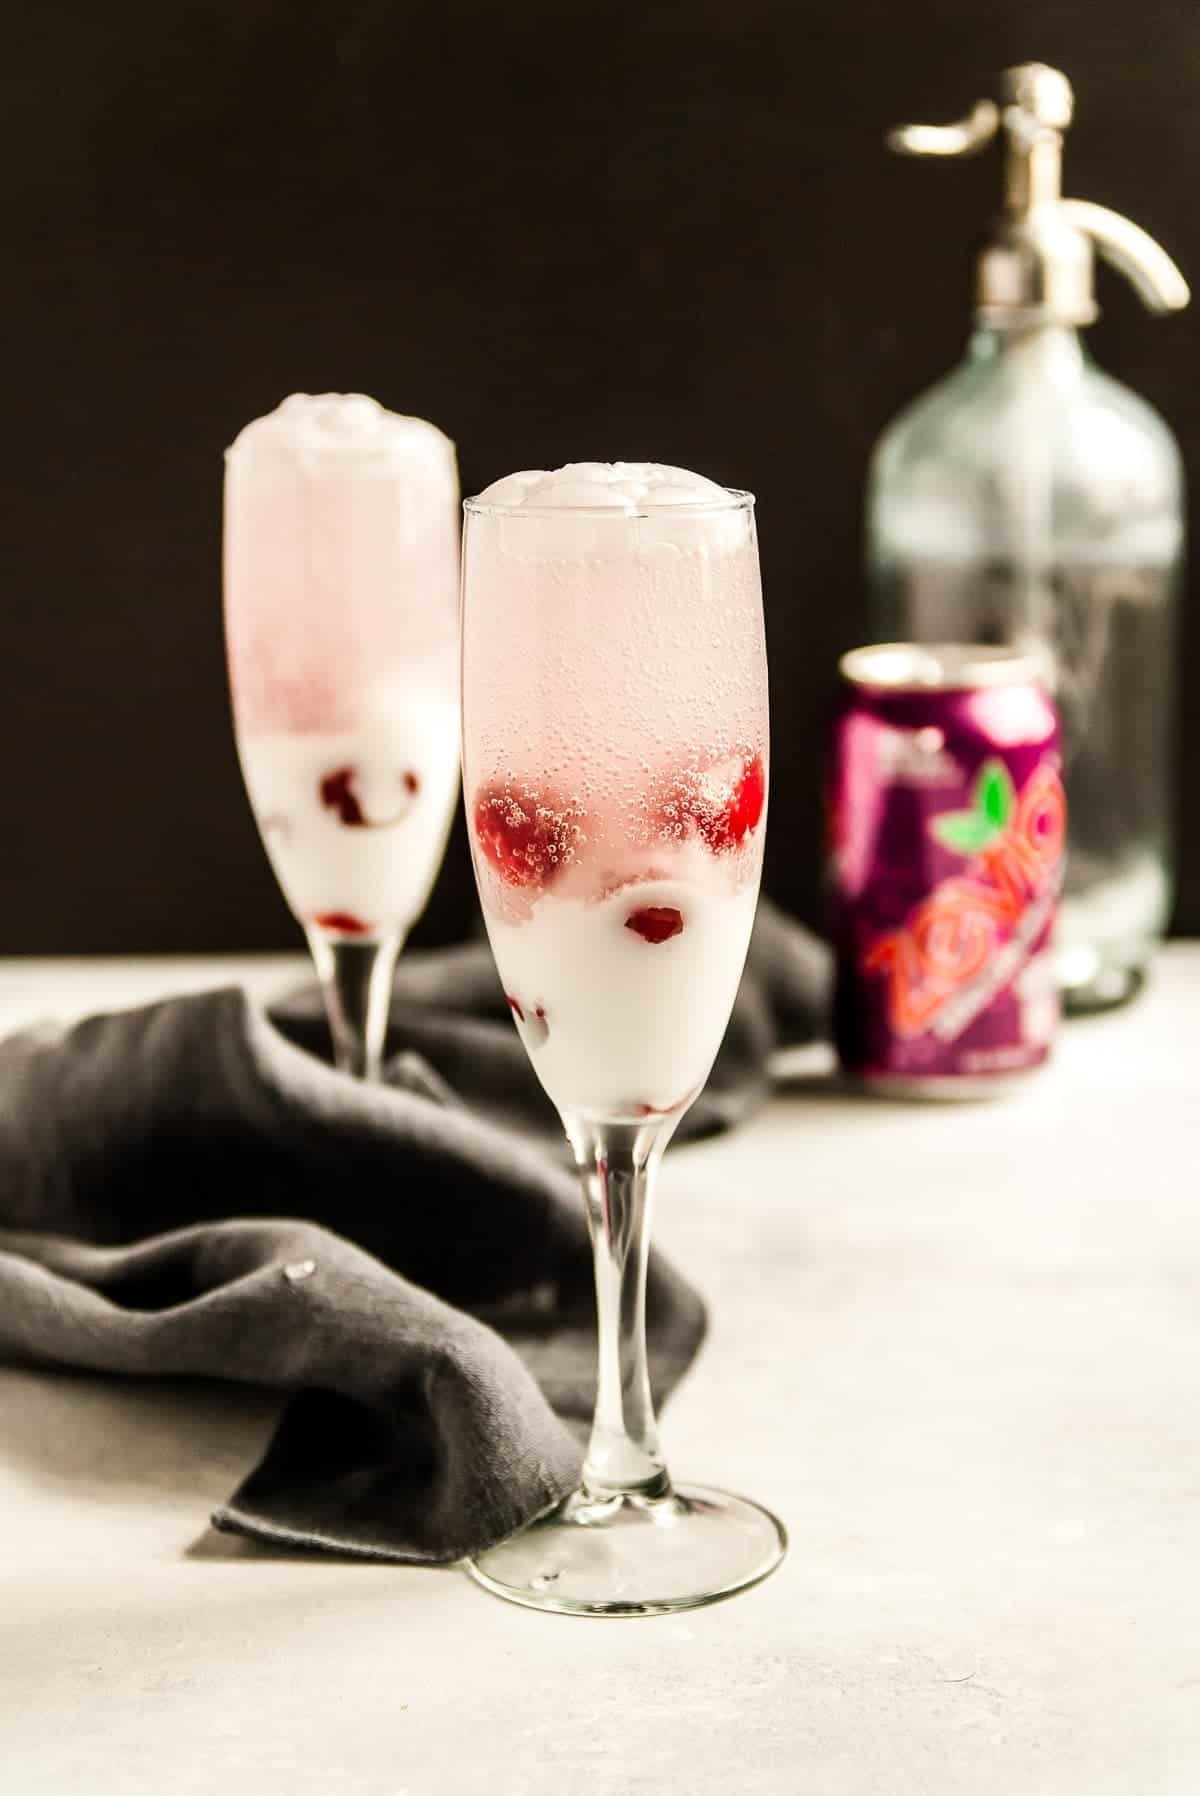 Champagne glasses filled with coconut cherry floats